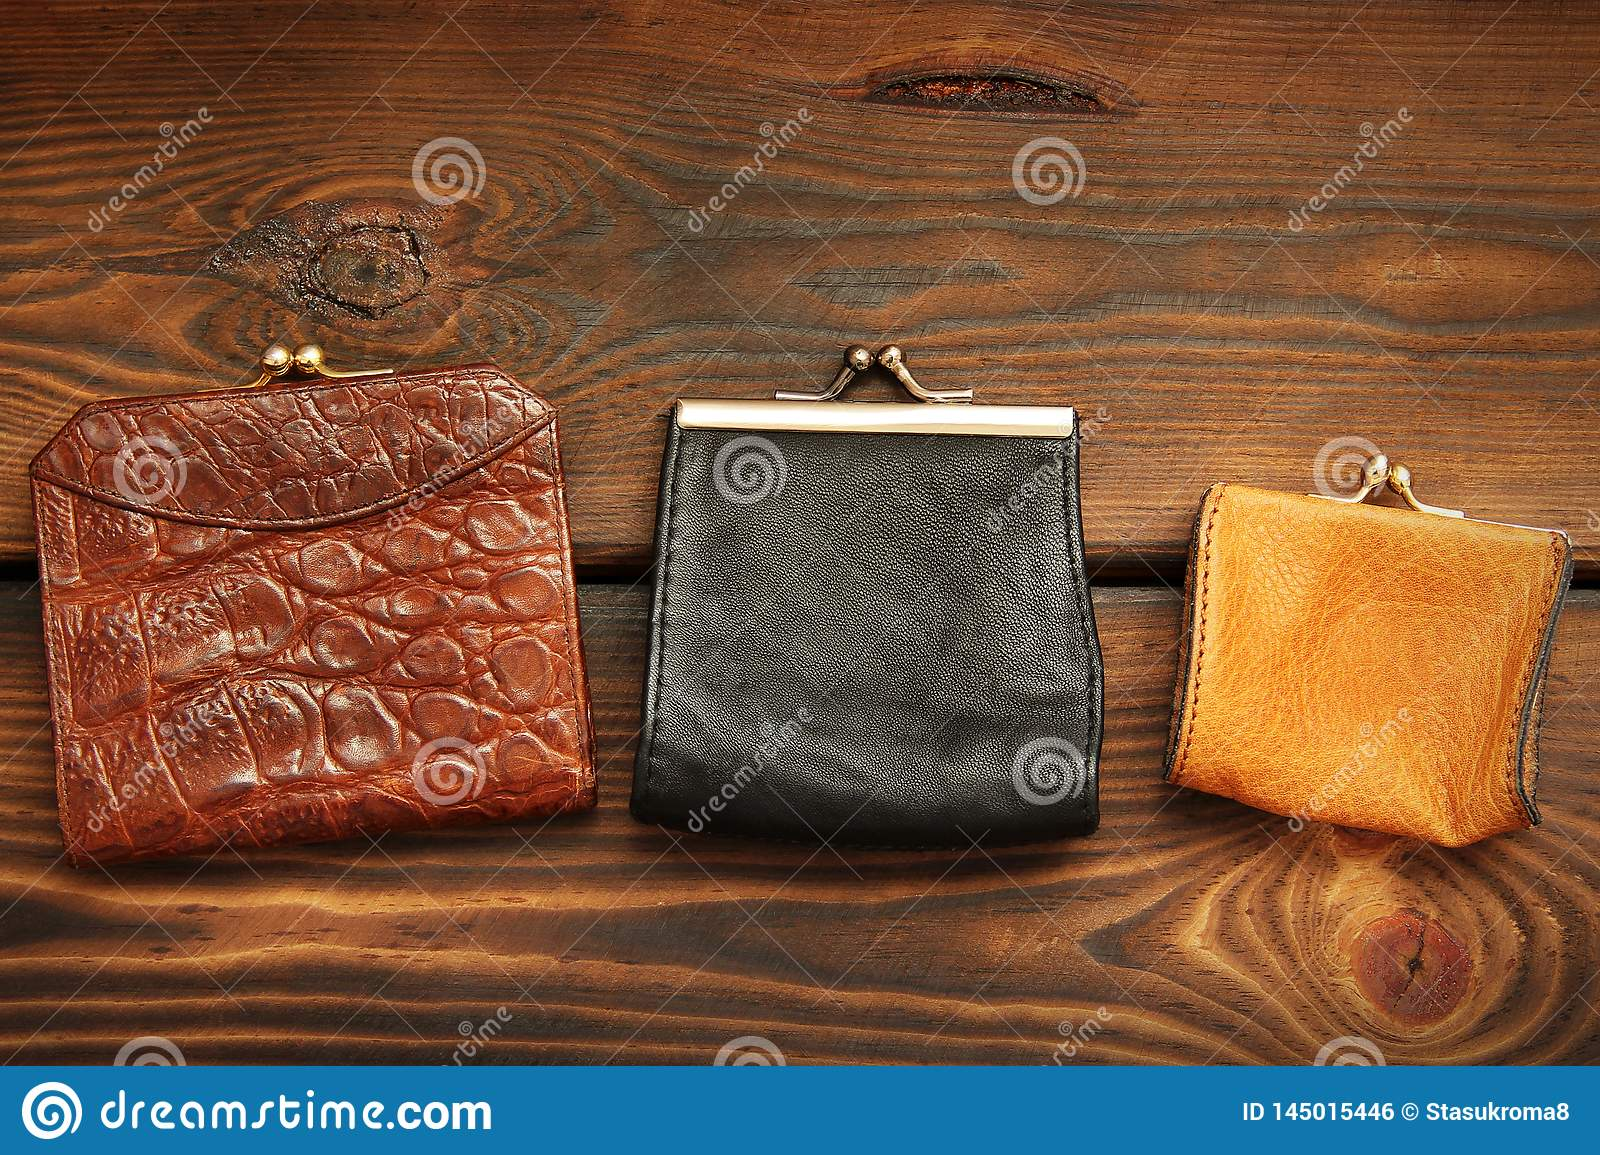 Coin purse on a wooden background